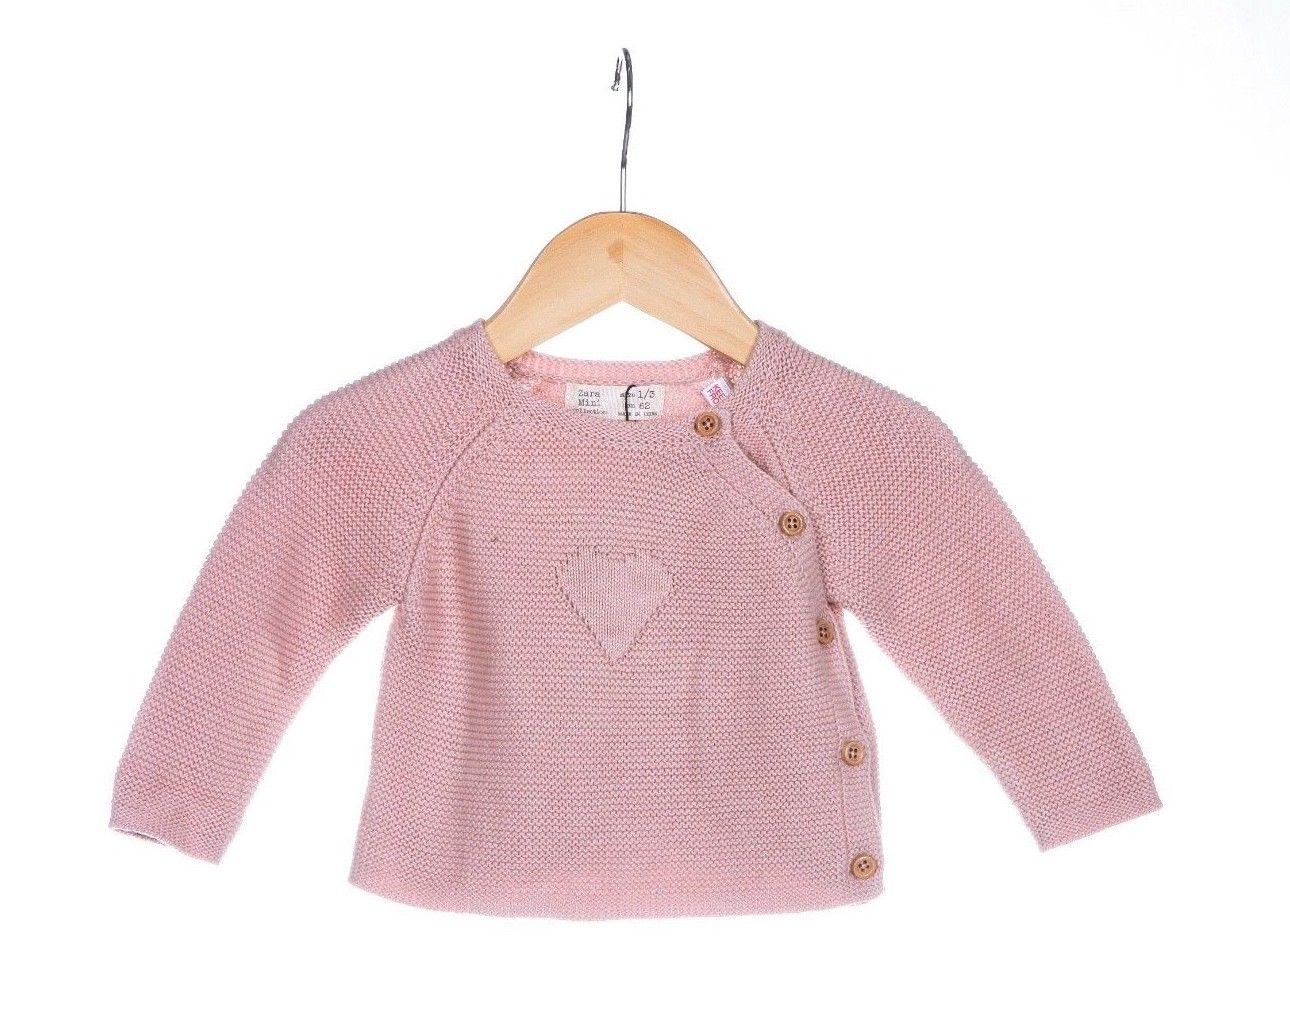 ZARA Baby Infant Pink Dusty Rose Knit Sweater Size 62cm / 1-3M